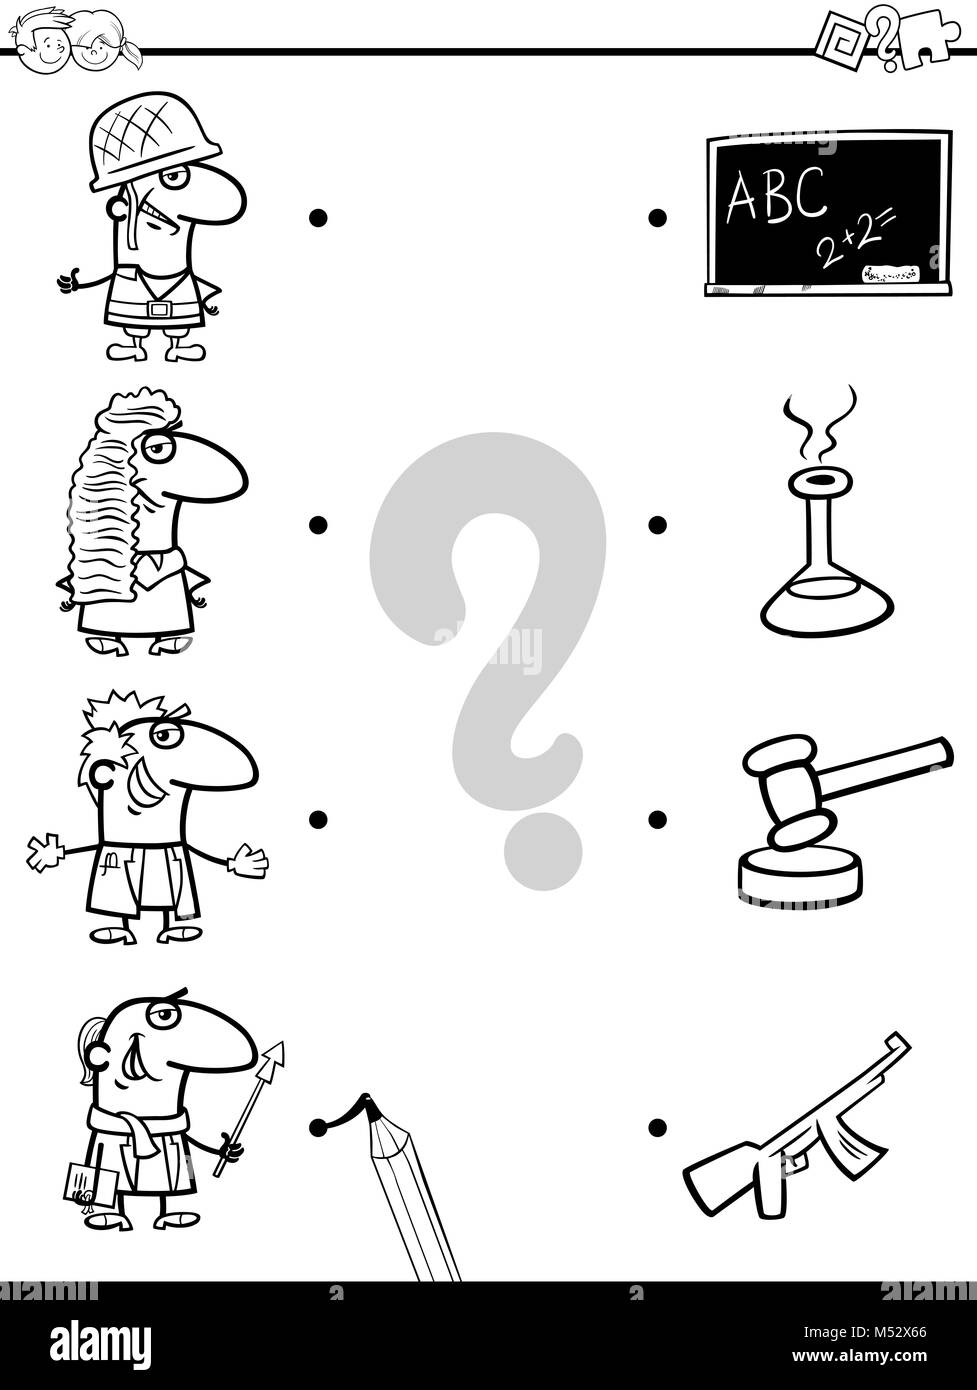 match professions educational coloring book - Stock Image